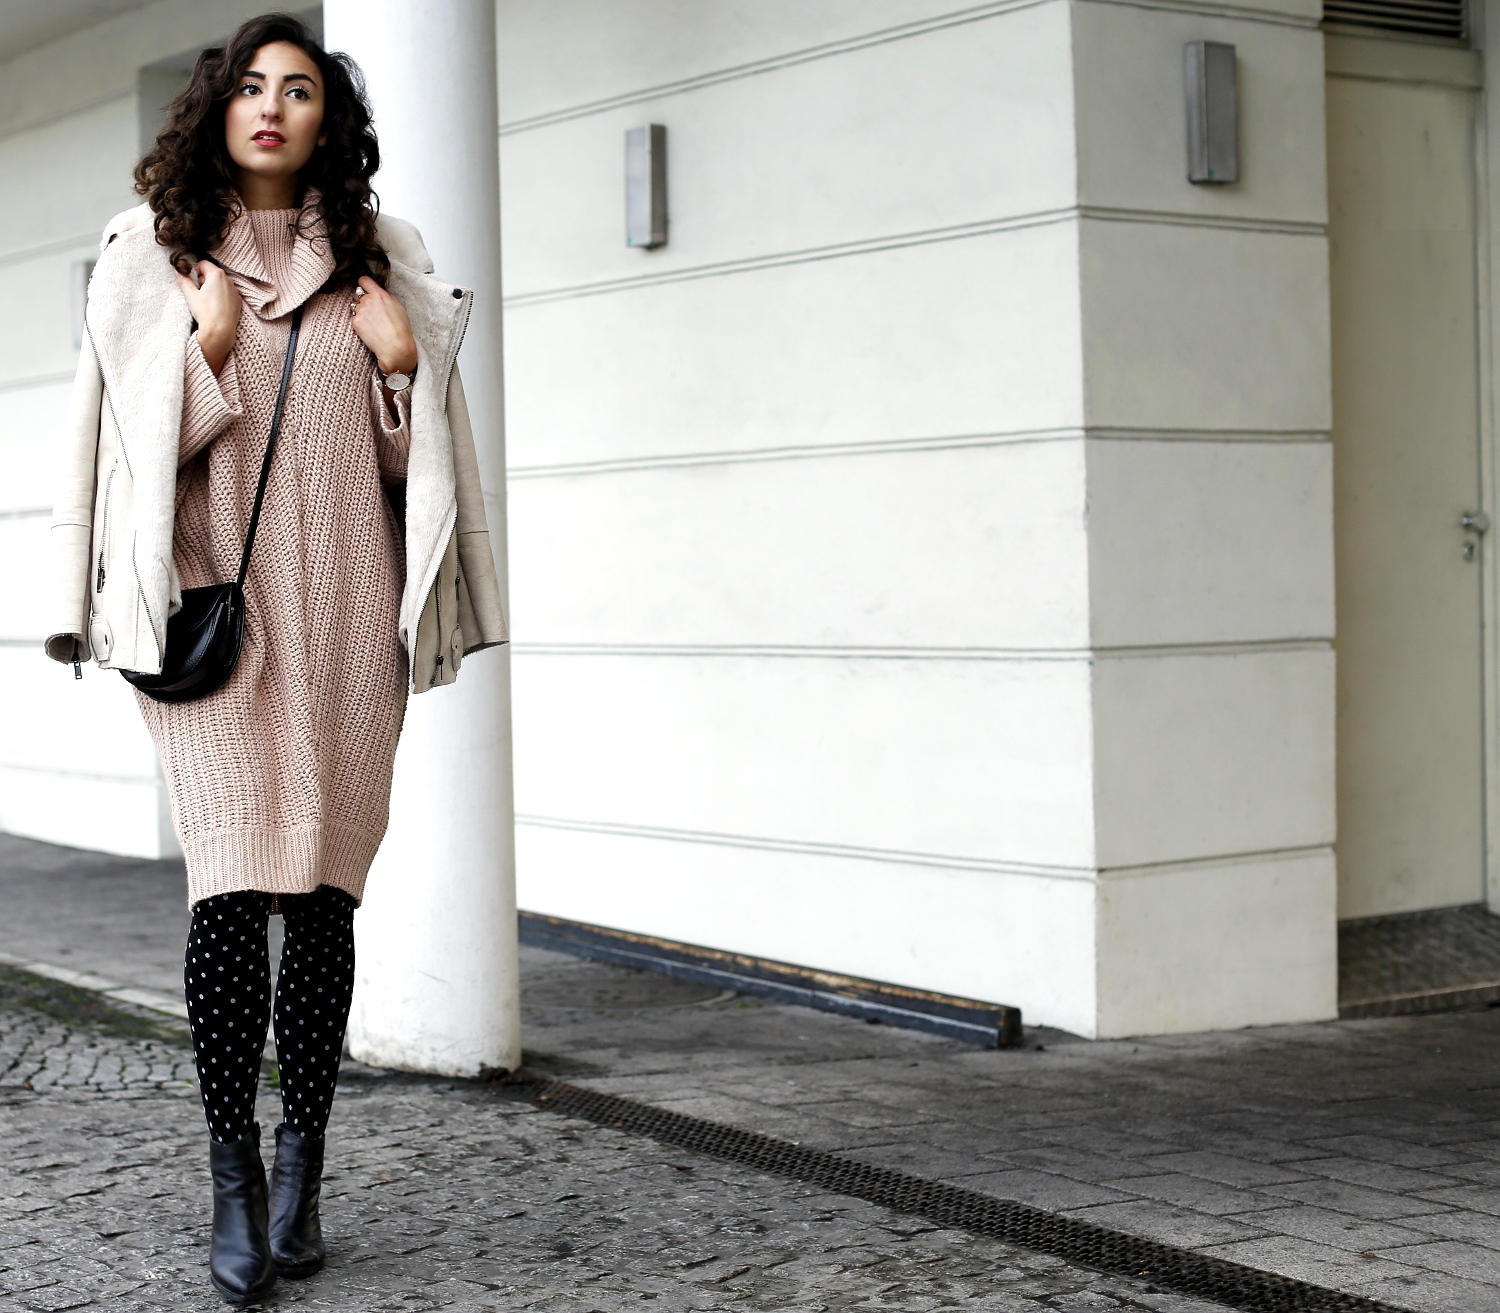 vero moda oversize knitted dress blush pink turtleneck dress dot tights pointed booties shearling jacket faux fur acne fake dupe samieze streetstyle fashionblog berlin girly winter look ootd inspiration